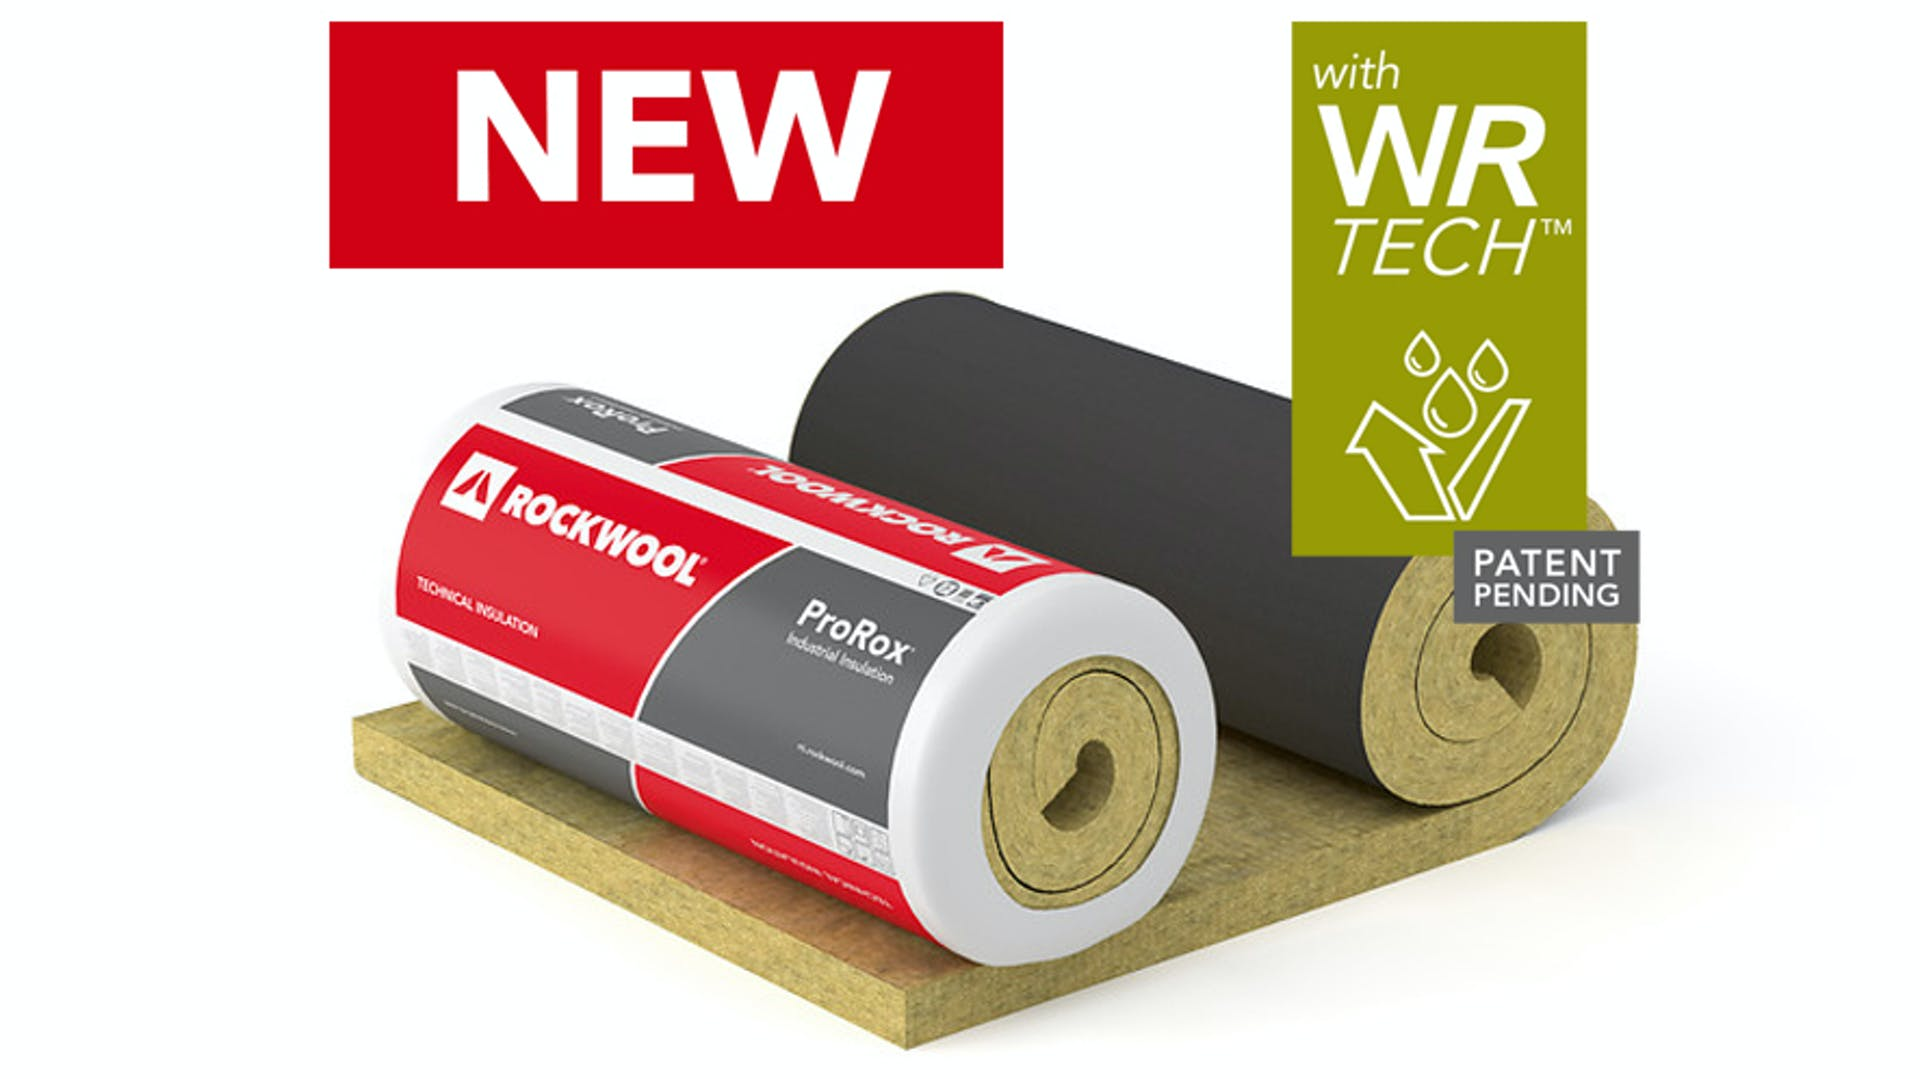 wr-tech, industrial, prorox, prorox ma 520 alu, product, patent pending, new